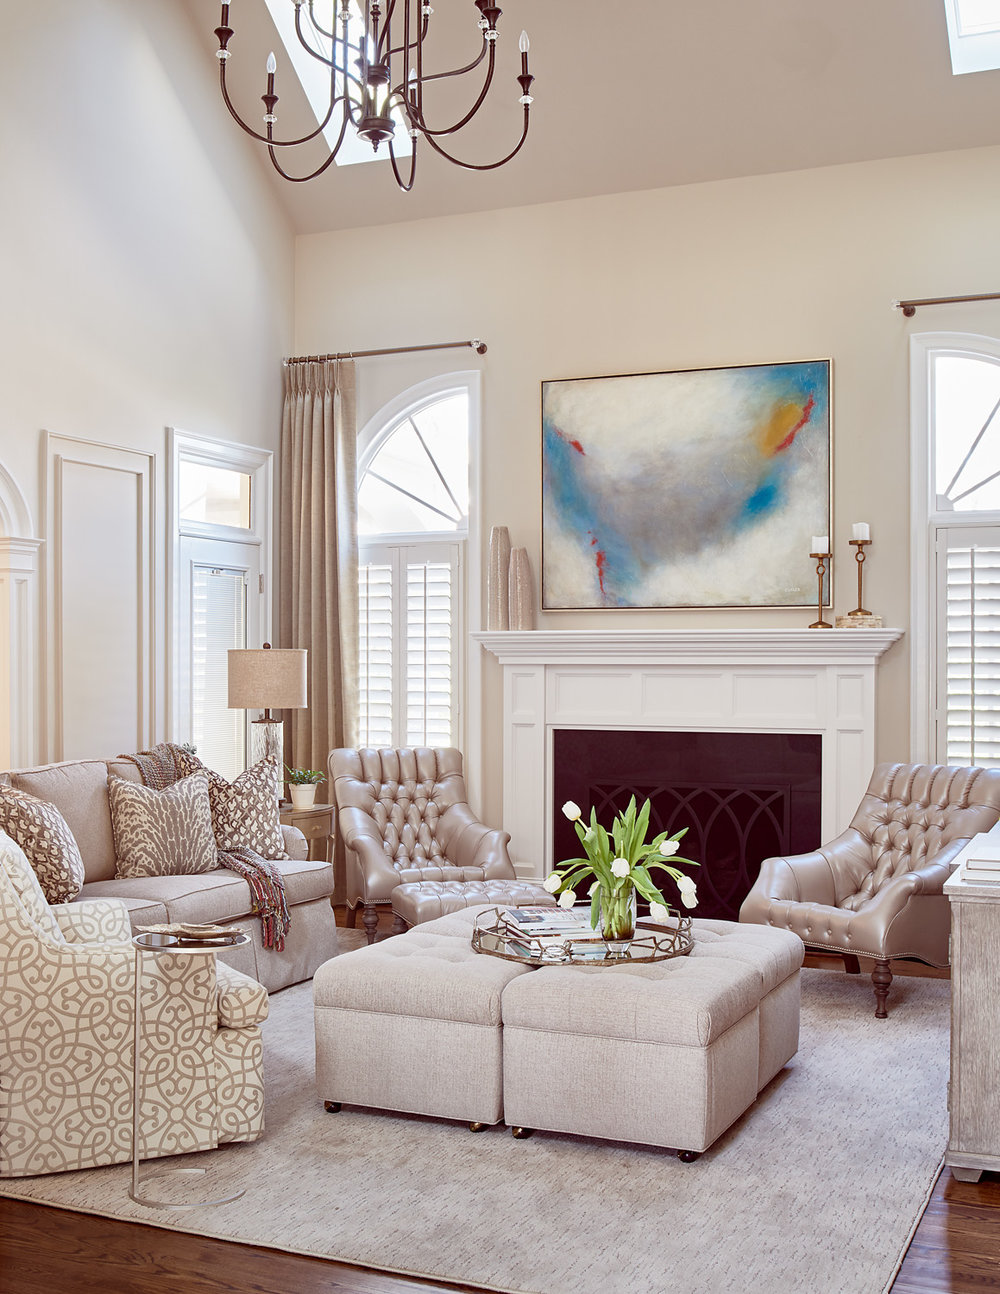 interior-design-ballantyne-living-room-charlotte-nc-1.jpg